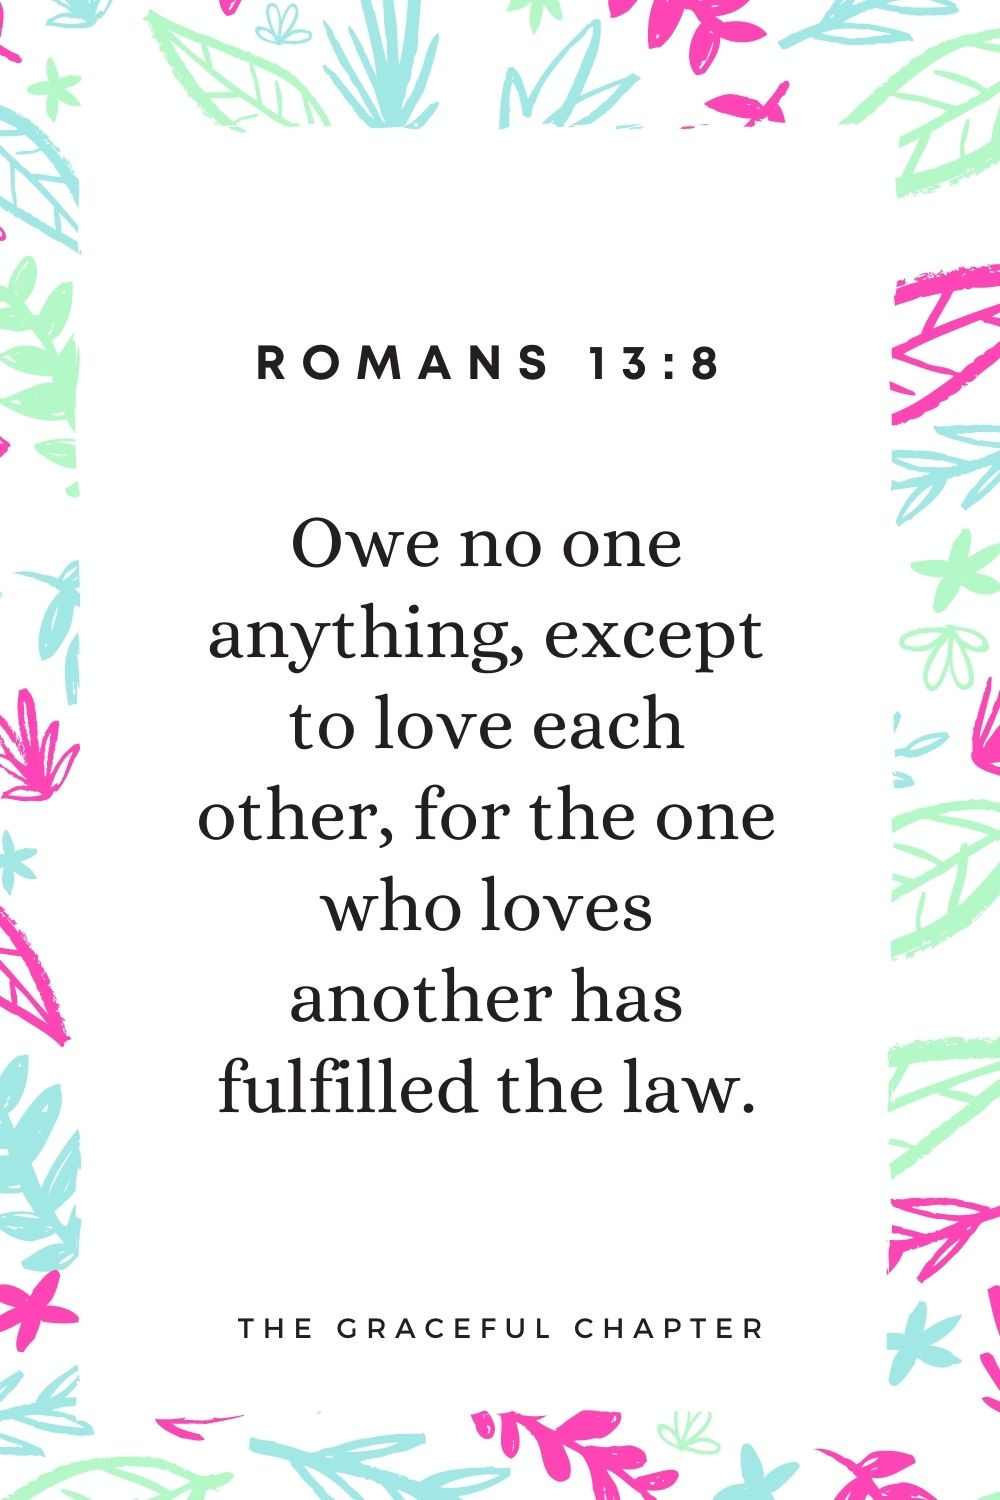 Owe no one anything, except to love each other, for the one who loves another has fulfilled the law. Romans 13:8